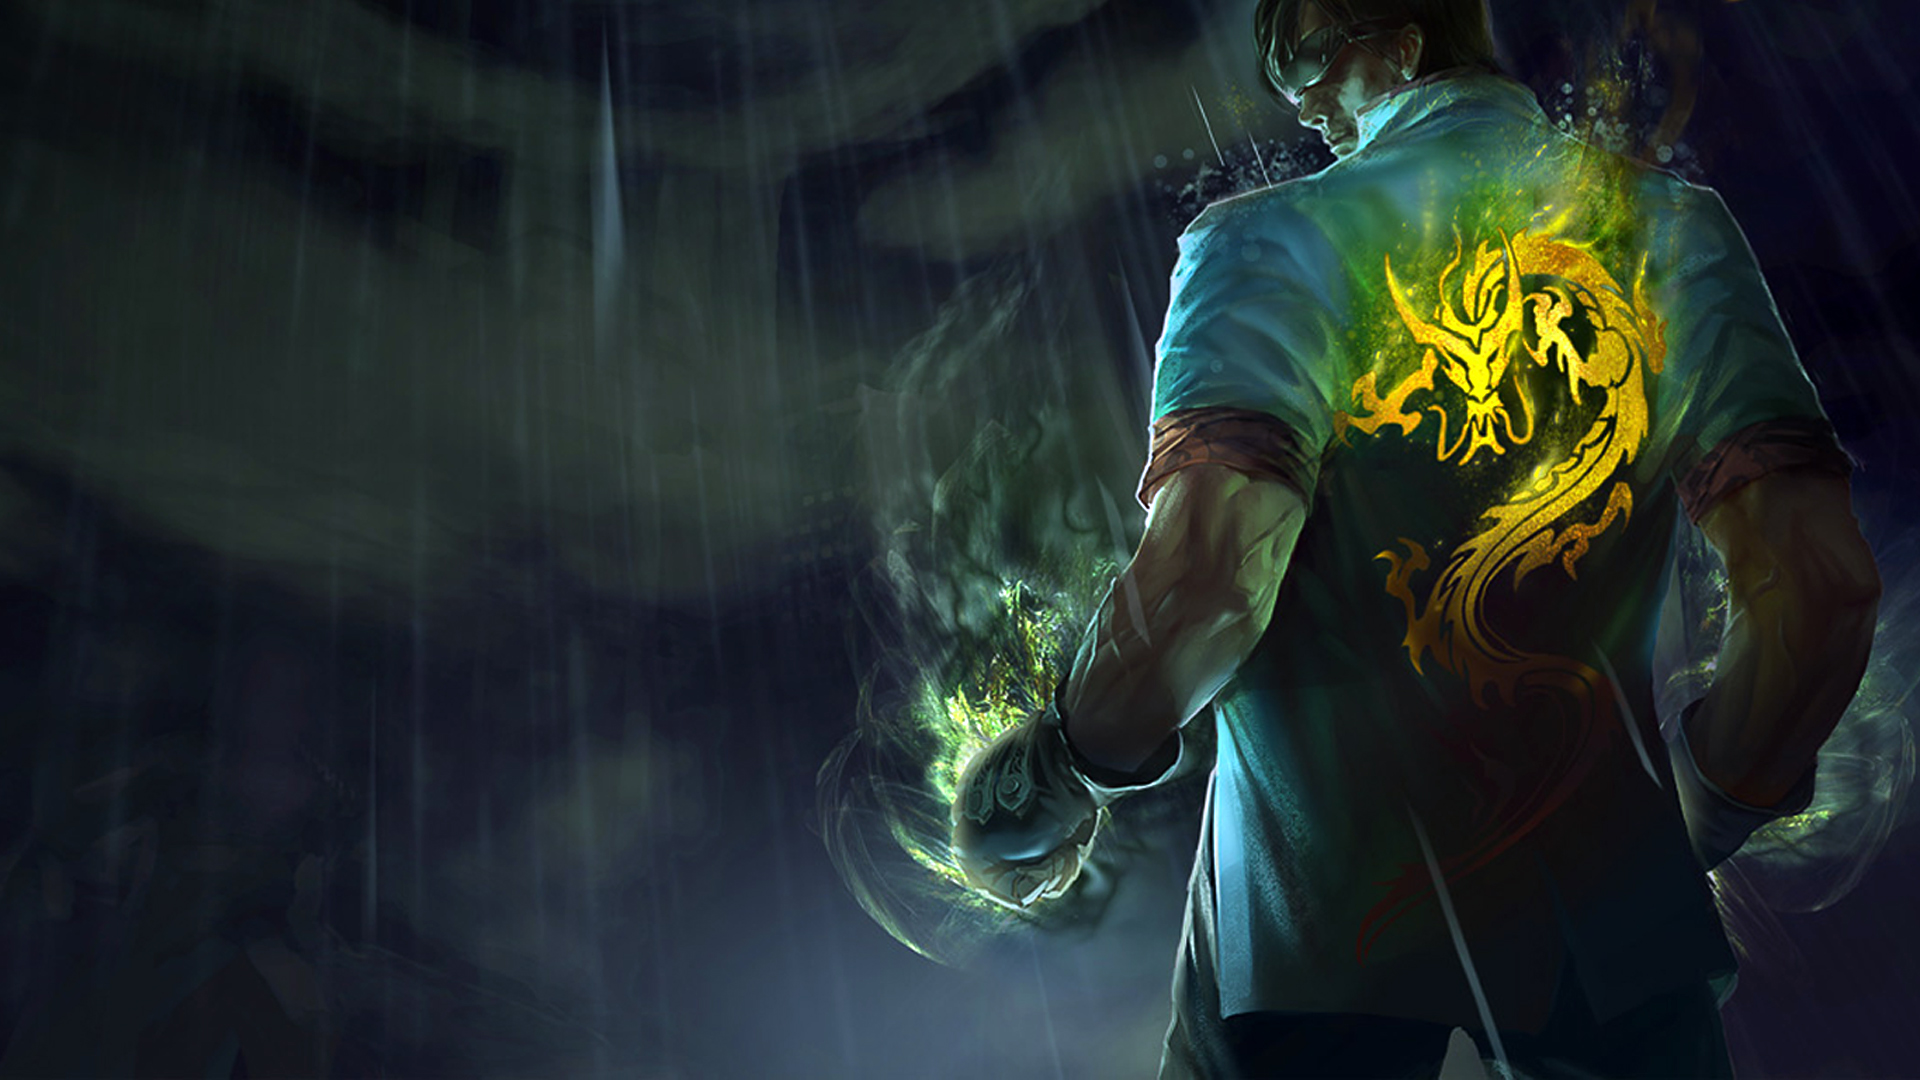 Dragon Fist Lee Sin Lolwallpapers